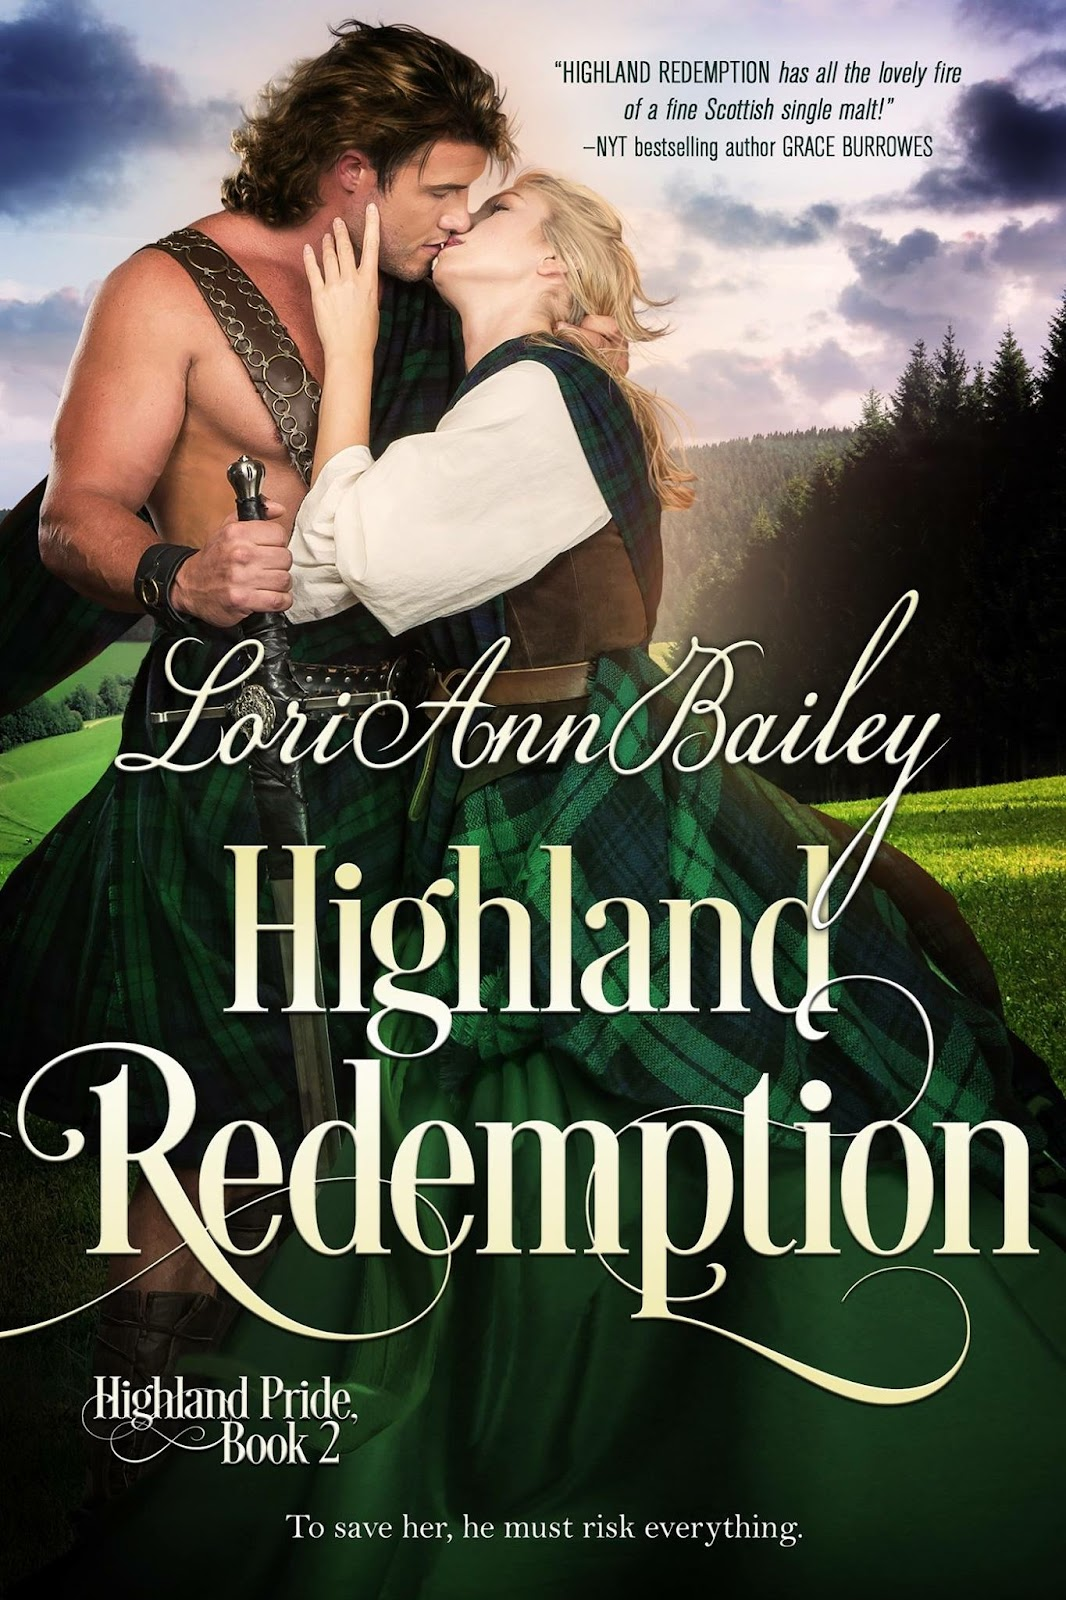 Celtic barbs tartan book review blog 2017 the giveaway is the first book of the highland pride series highland deception lori ann bailey generously donated a signed print copy of highland fandeluxe Images